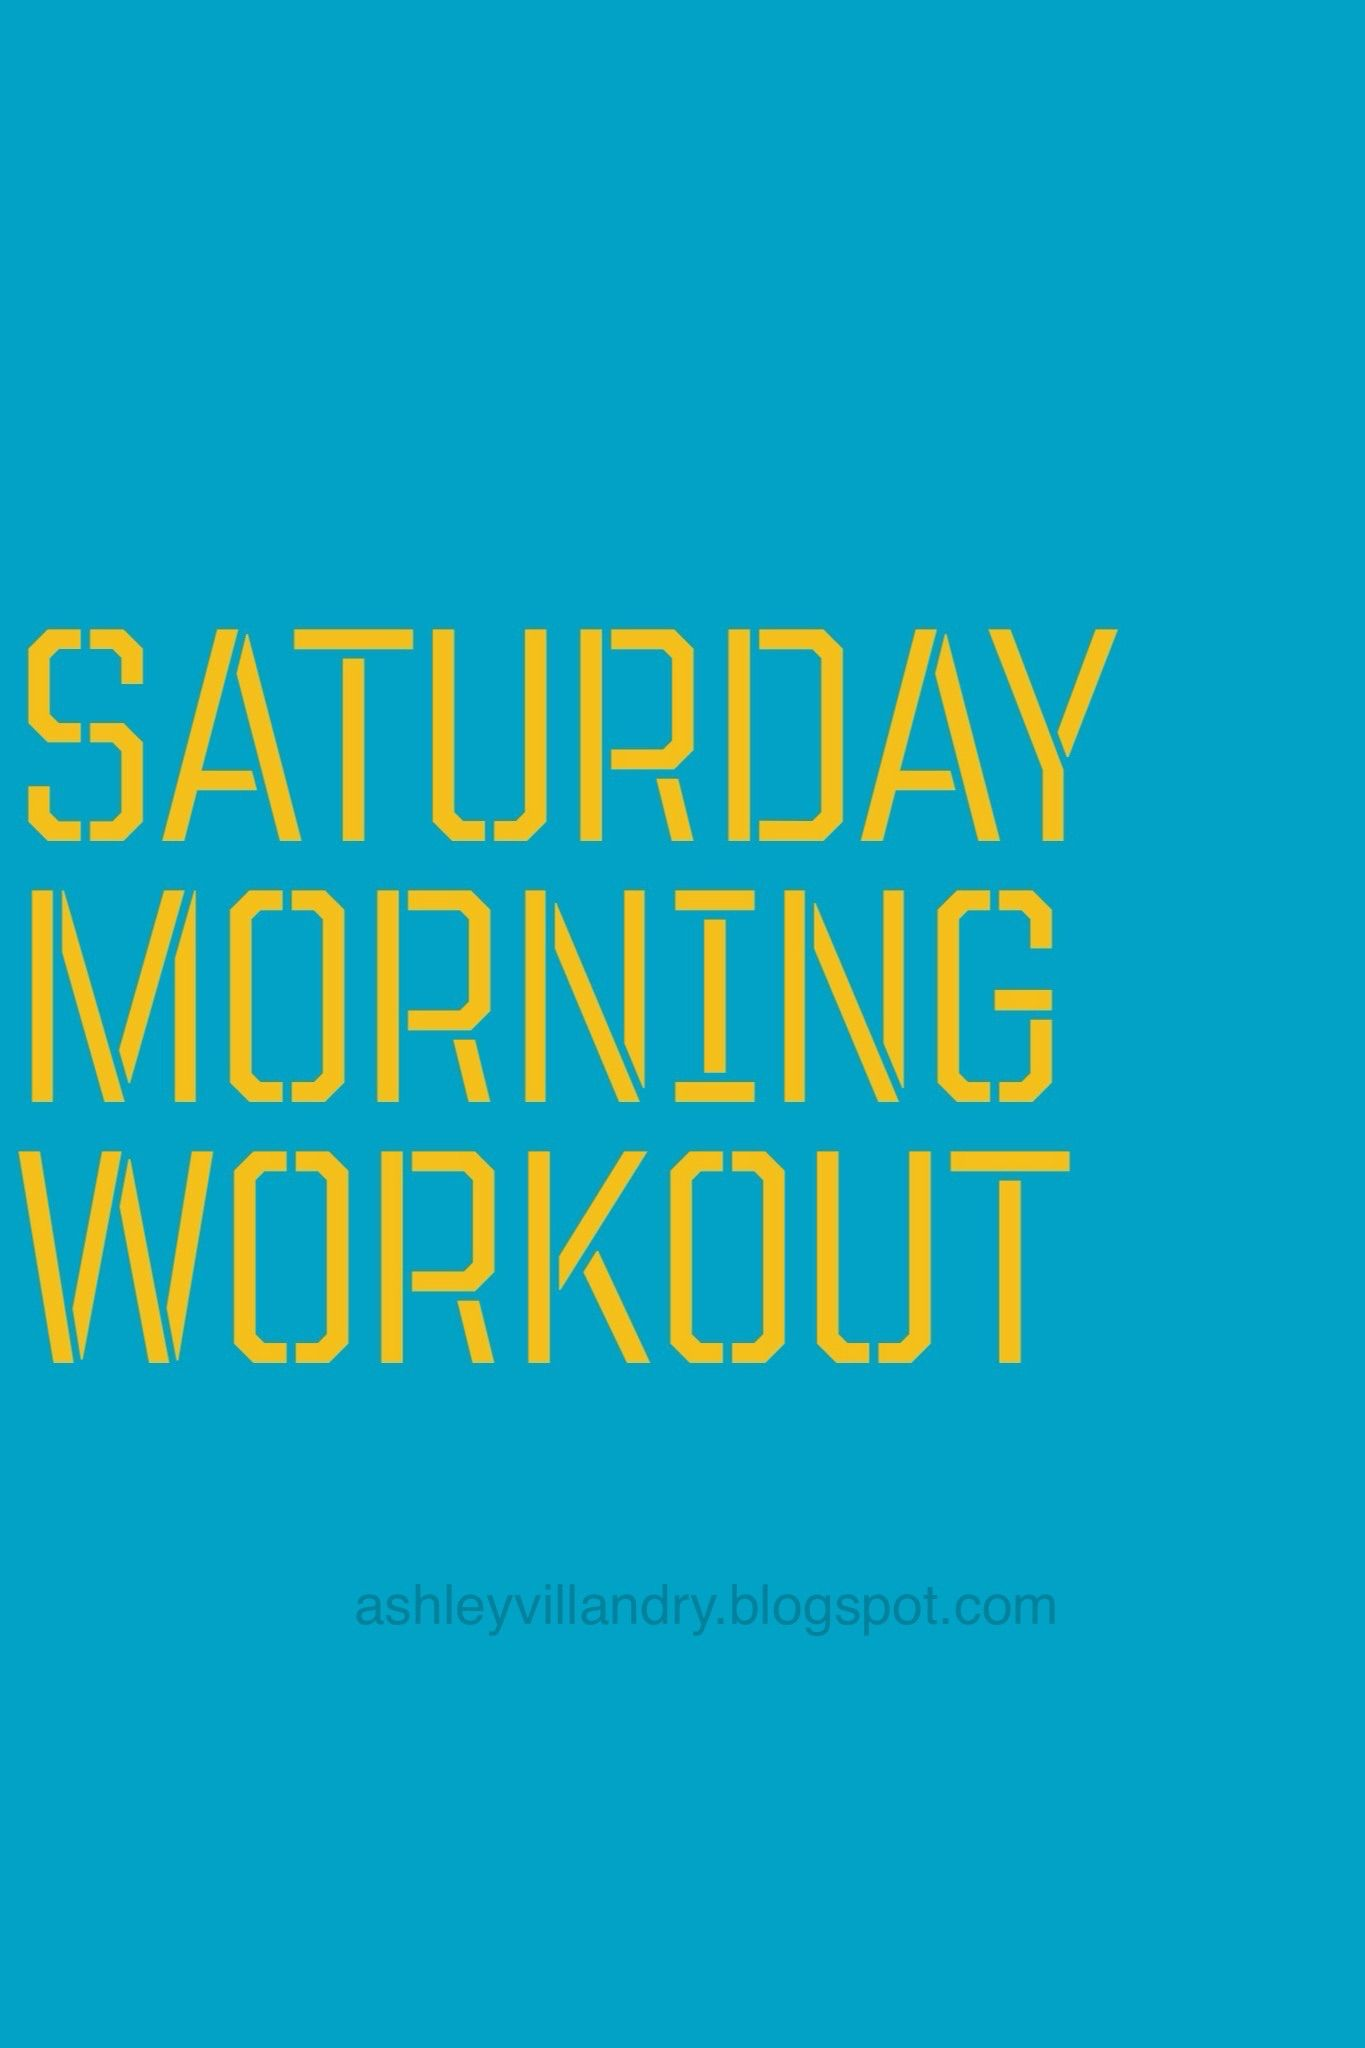 Enjoy Your Saturday Morning Workout Workout Motivation Fitness